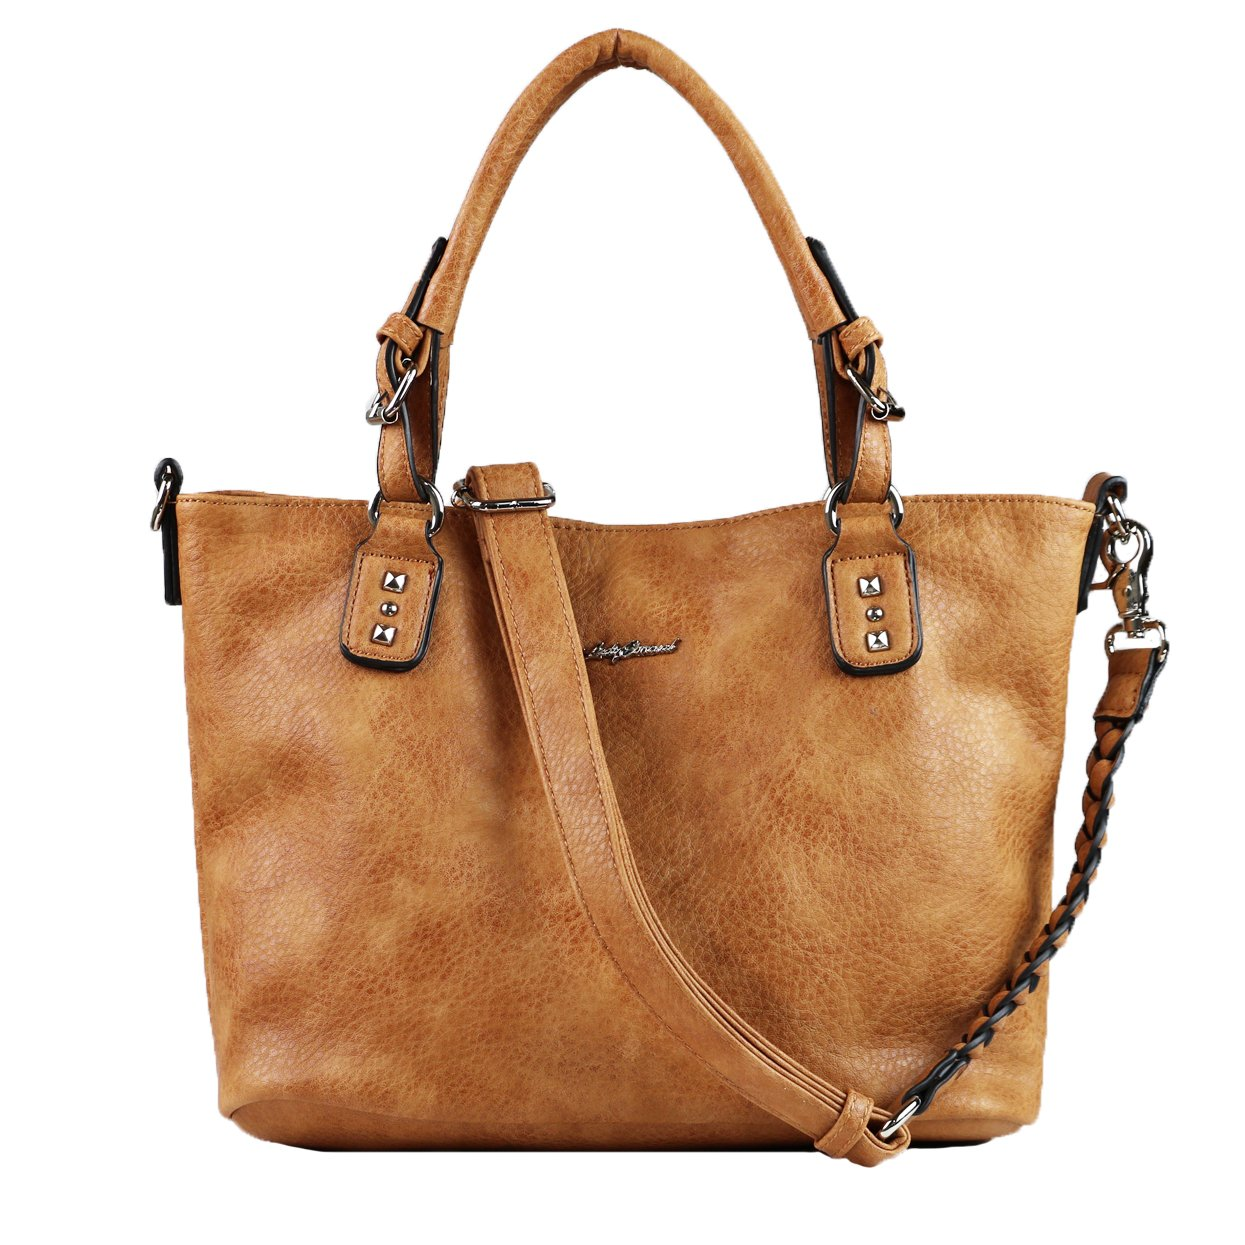 Lady Conceal Concealed Carry Purse - YKK Locking Ella Braided Concealed Weapon Tote by (Cinnamon) by Lady Conceal